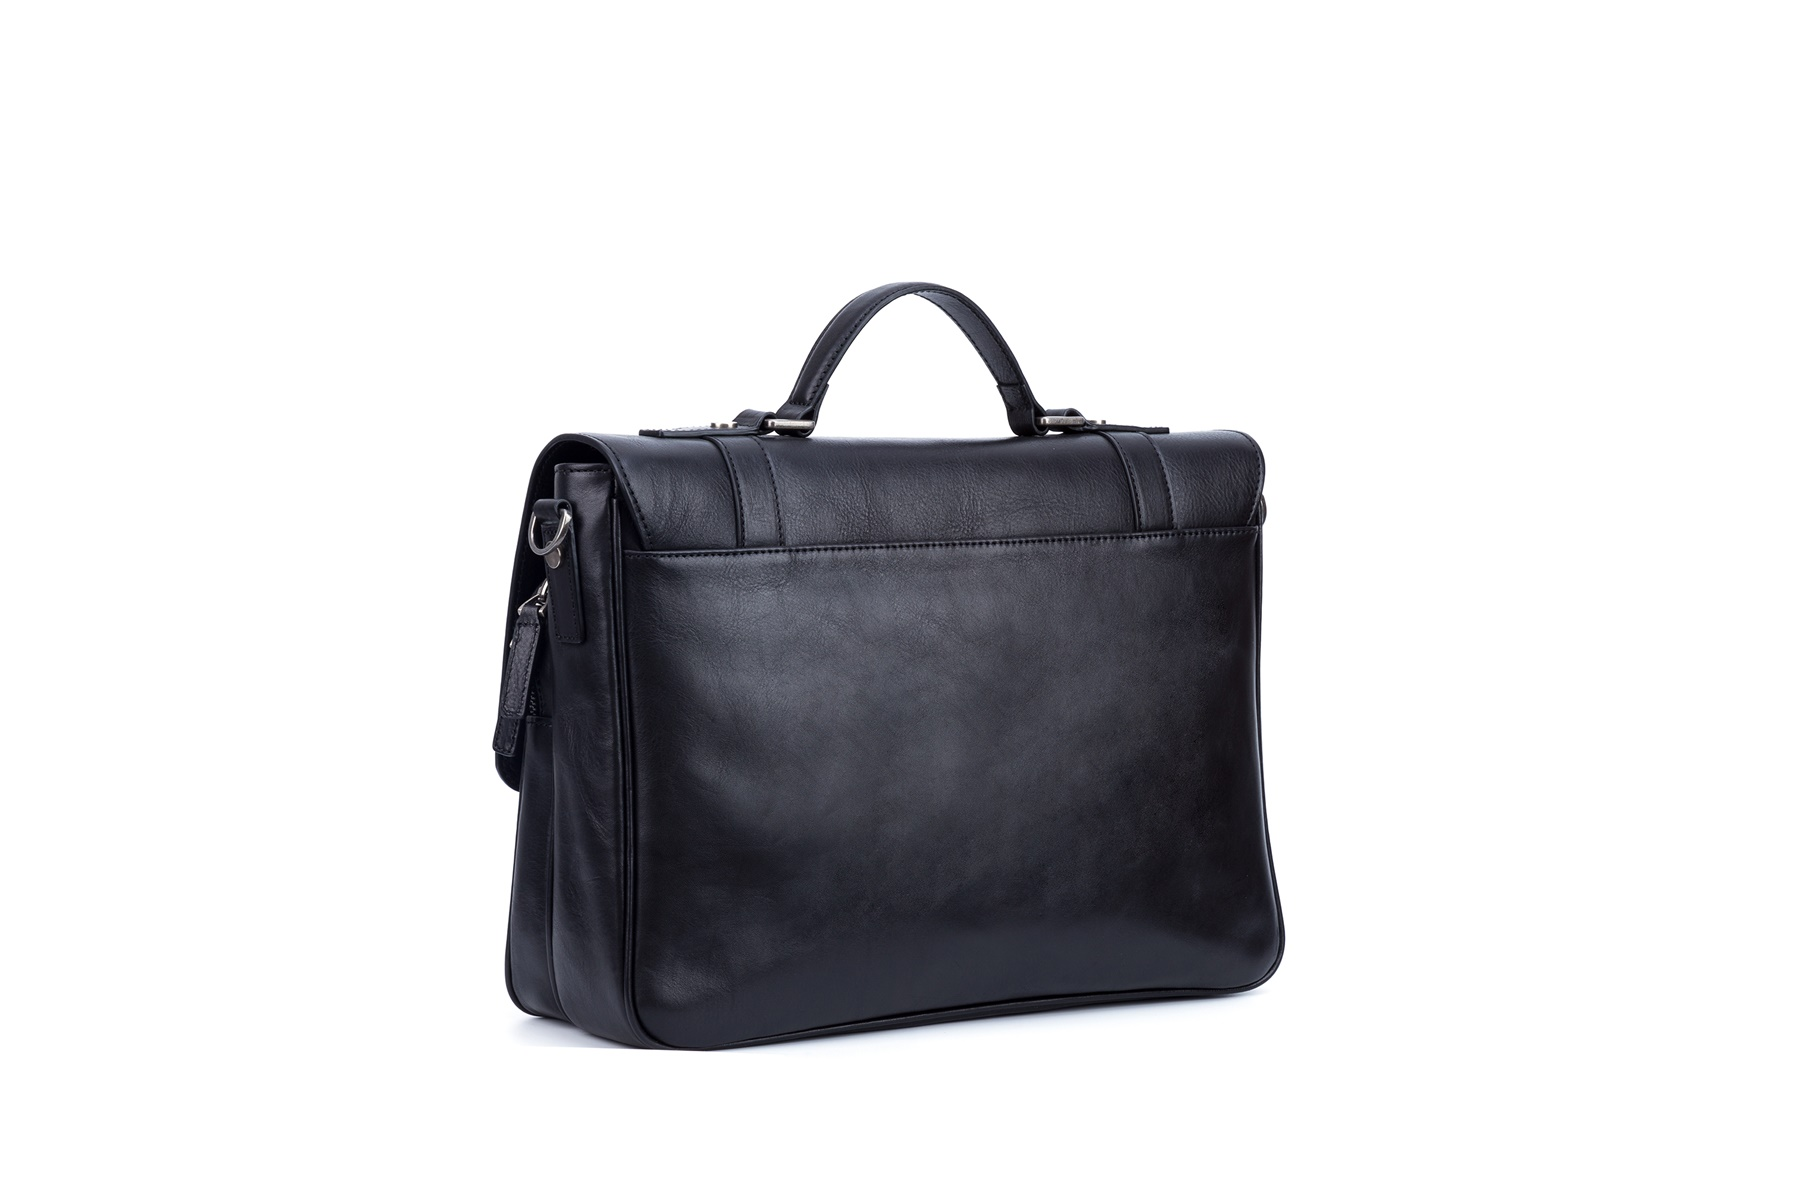 GF bags-Find Business Bag Mens Fashion Messenger Bag From GF Bags-6